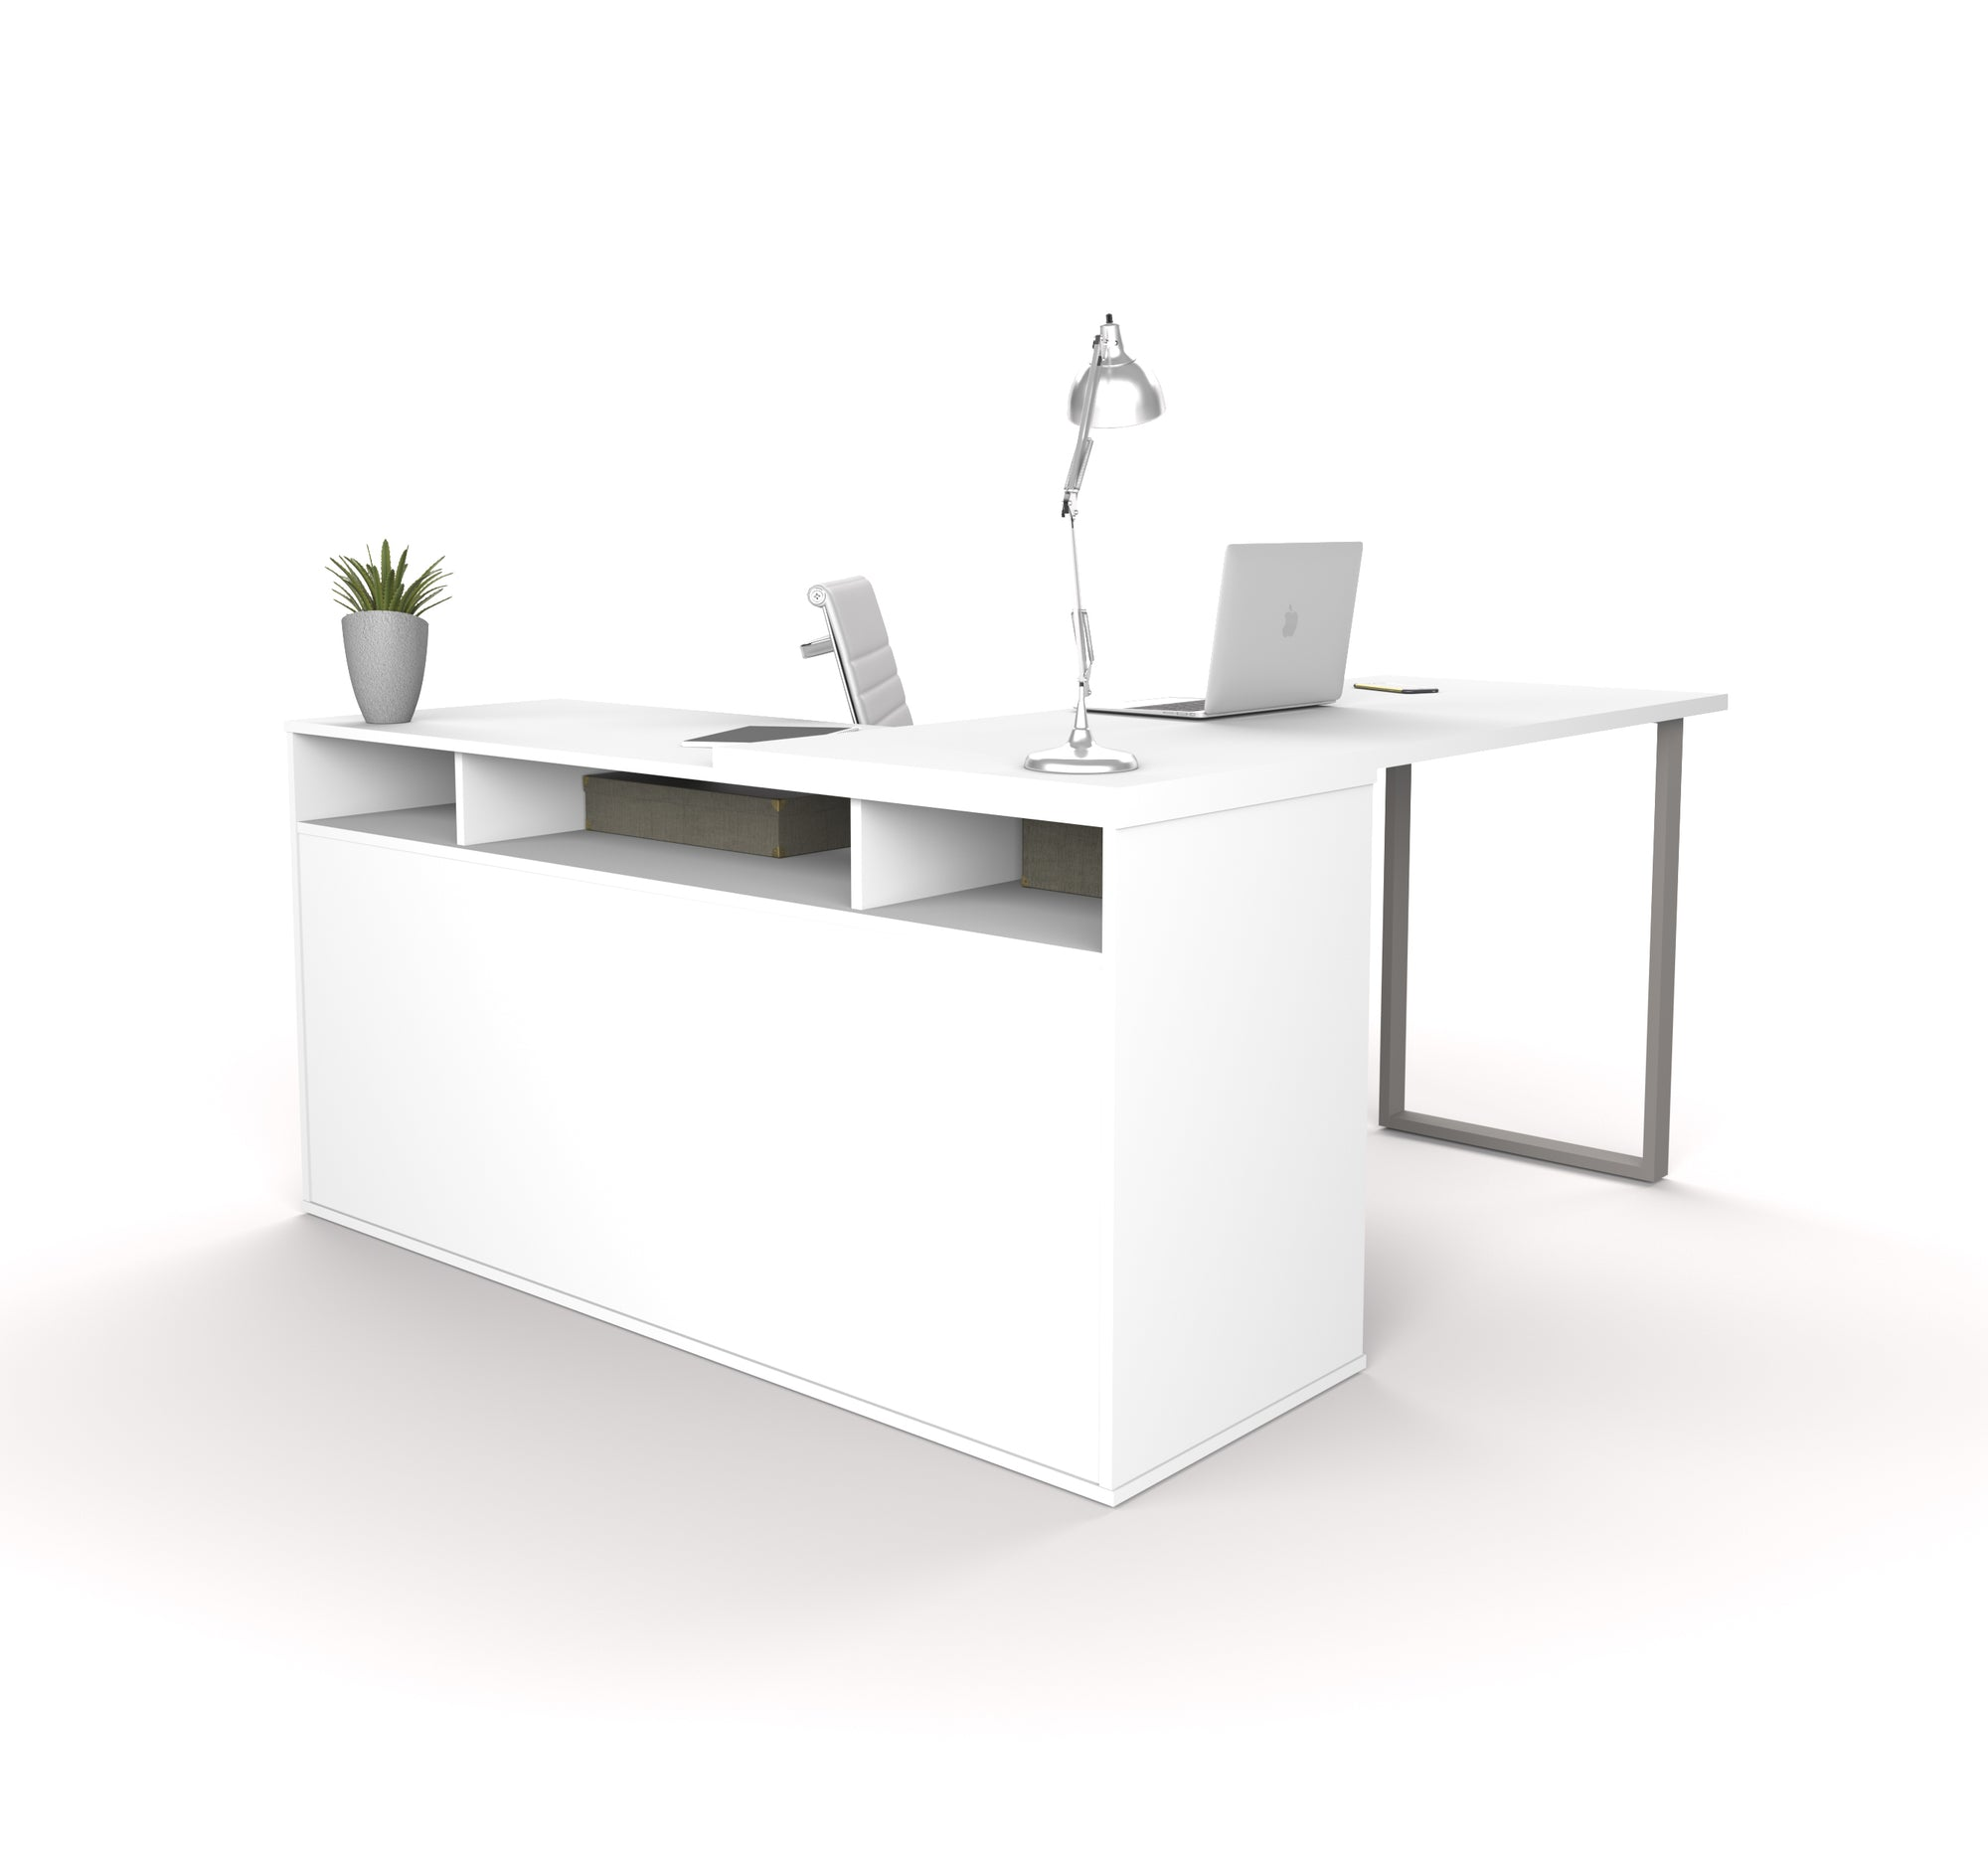 59 X 59 White L Shaped Desk W Integrated Storage By Bestar Officedesk Com